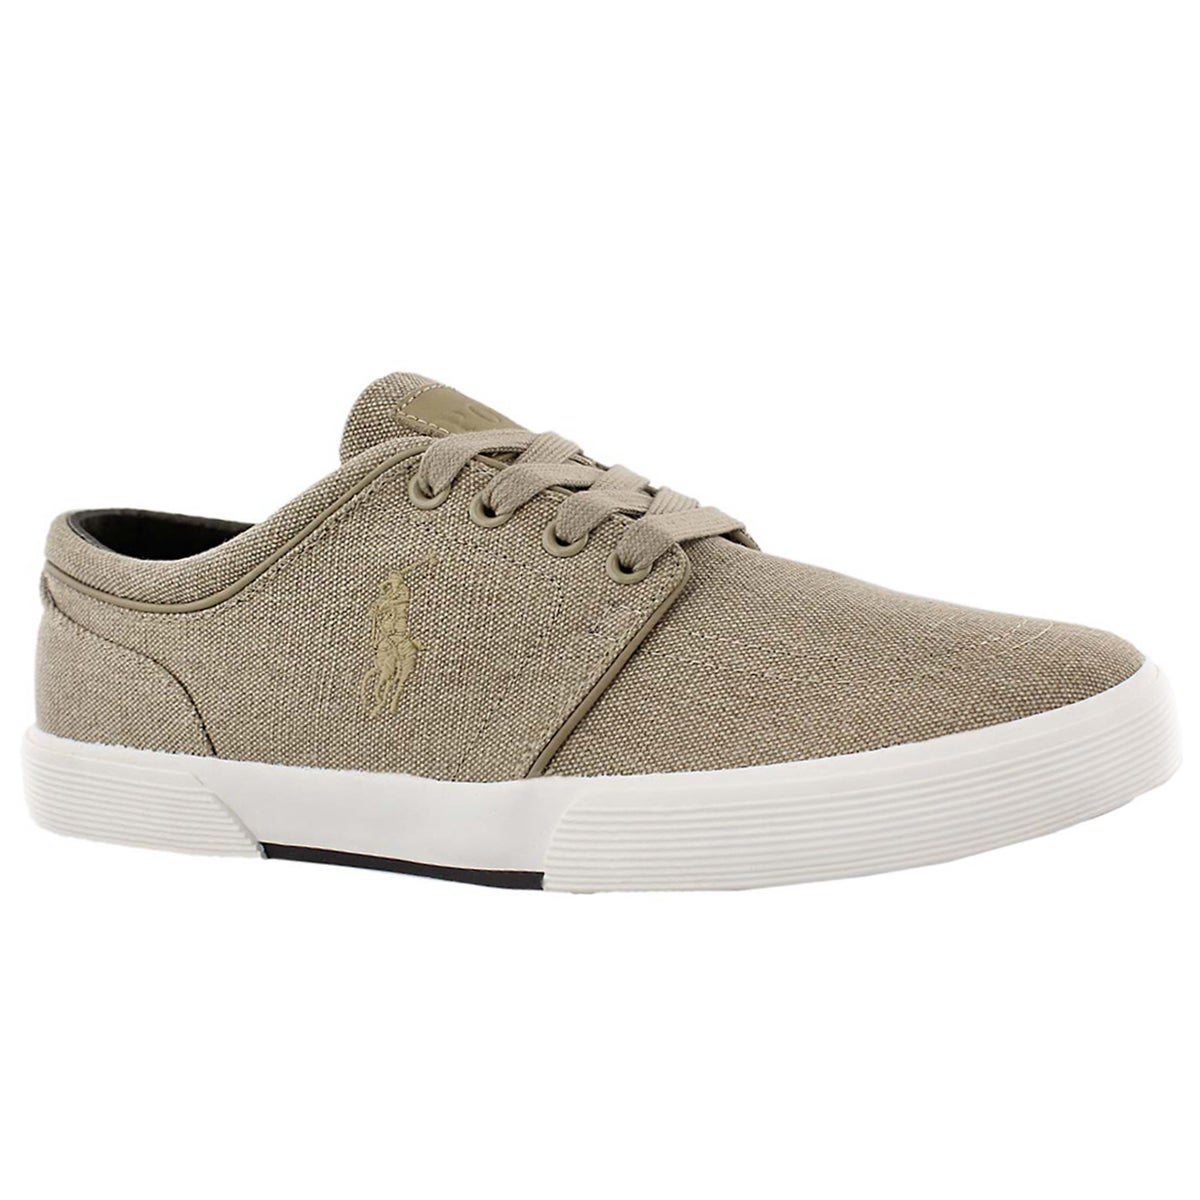 Men's FAXON LOW khaki vintage sneakers